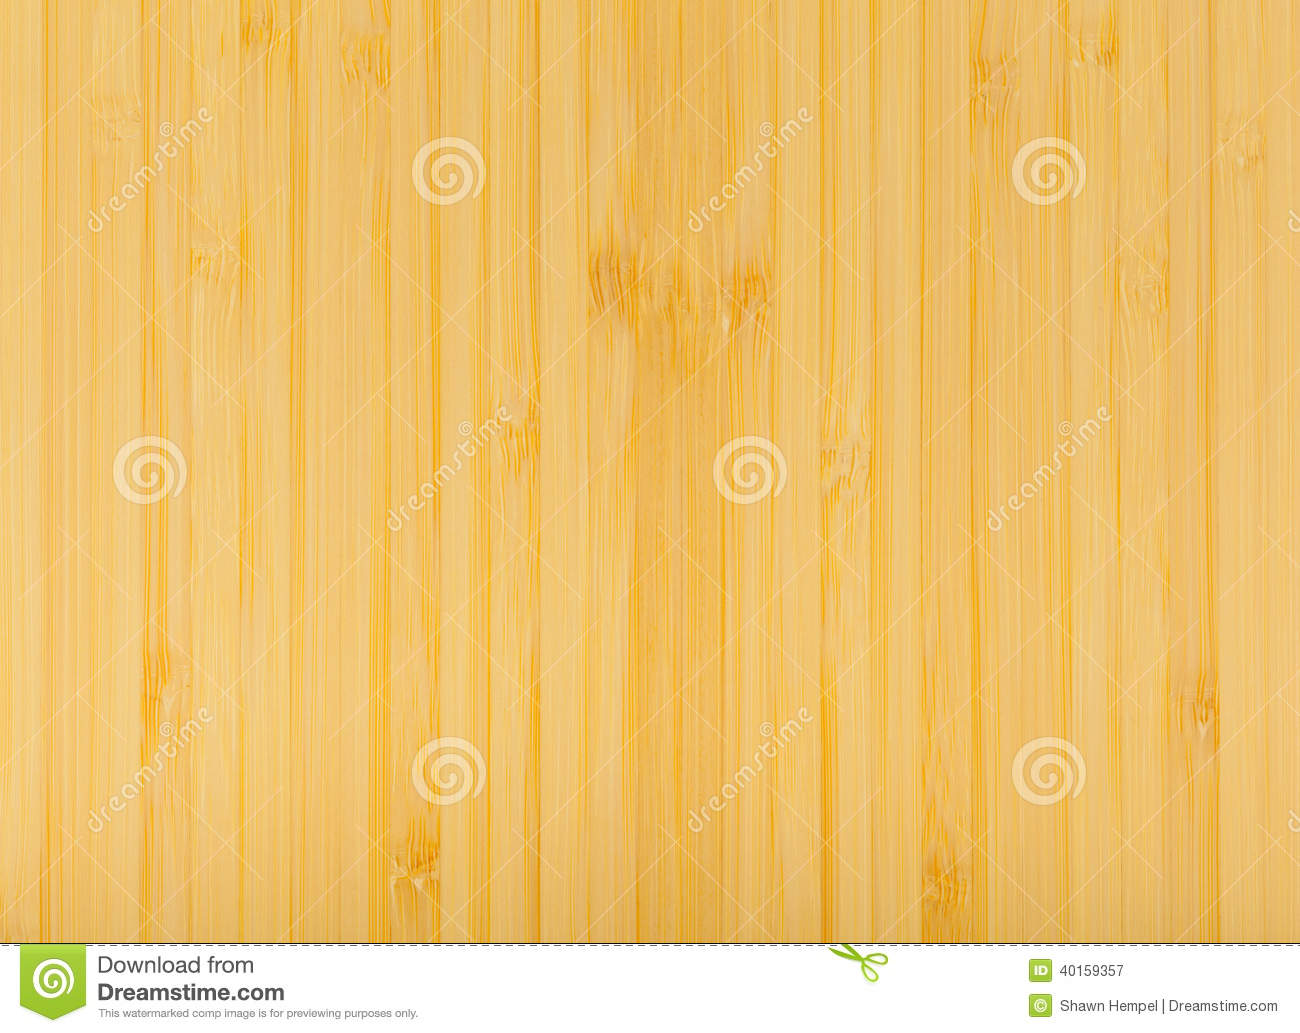 bamboo laminate flooring texture stock photo - Bamboo Laminate Flooring